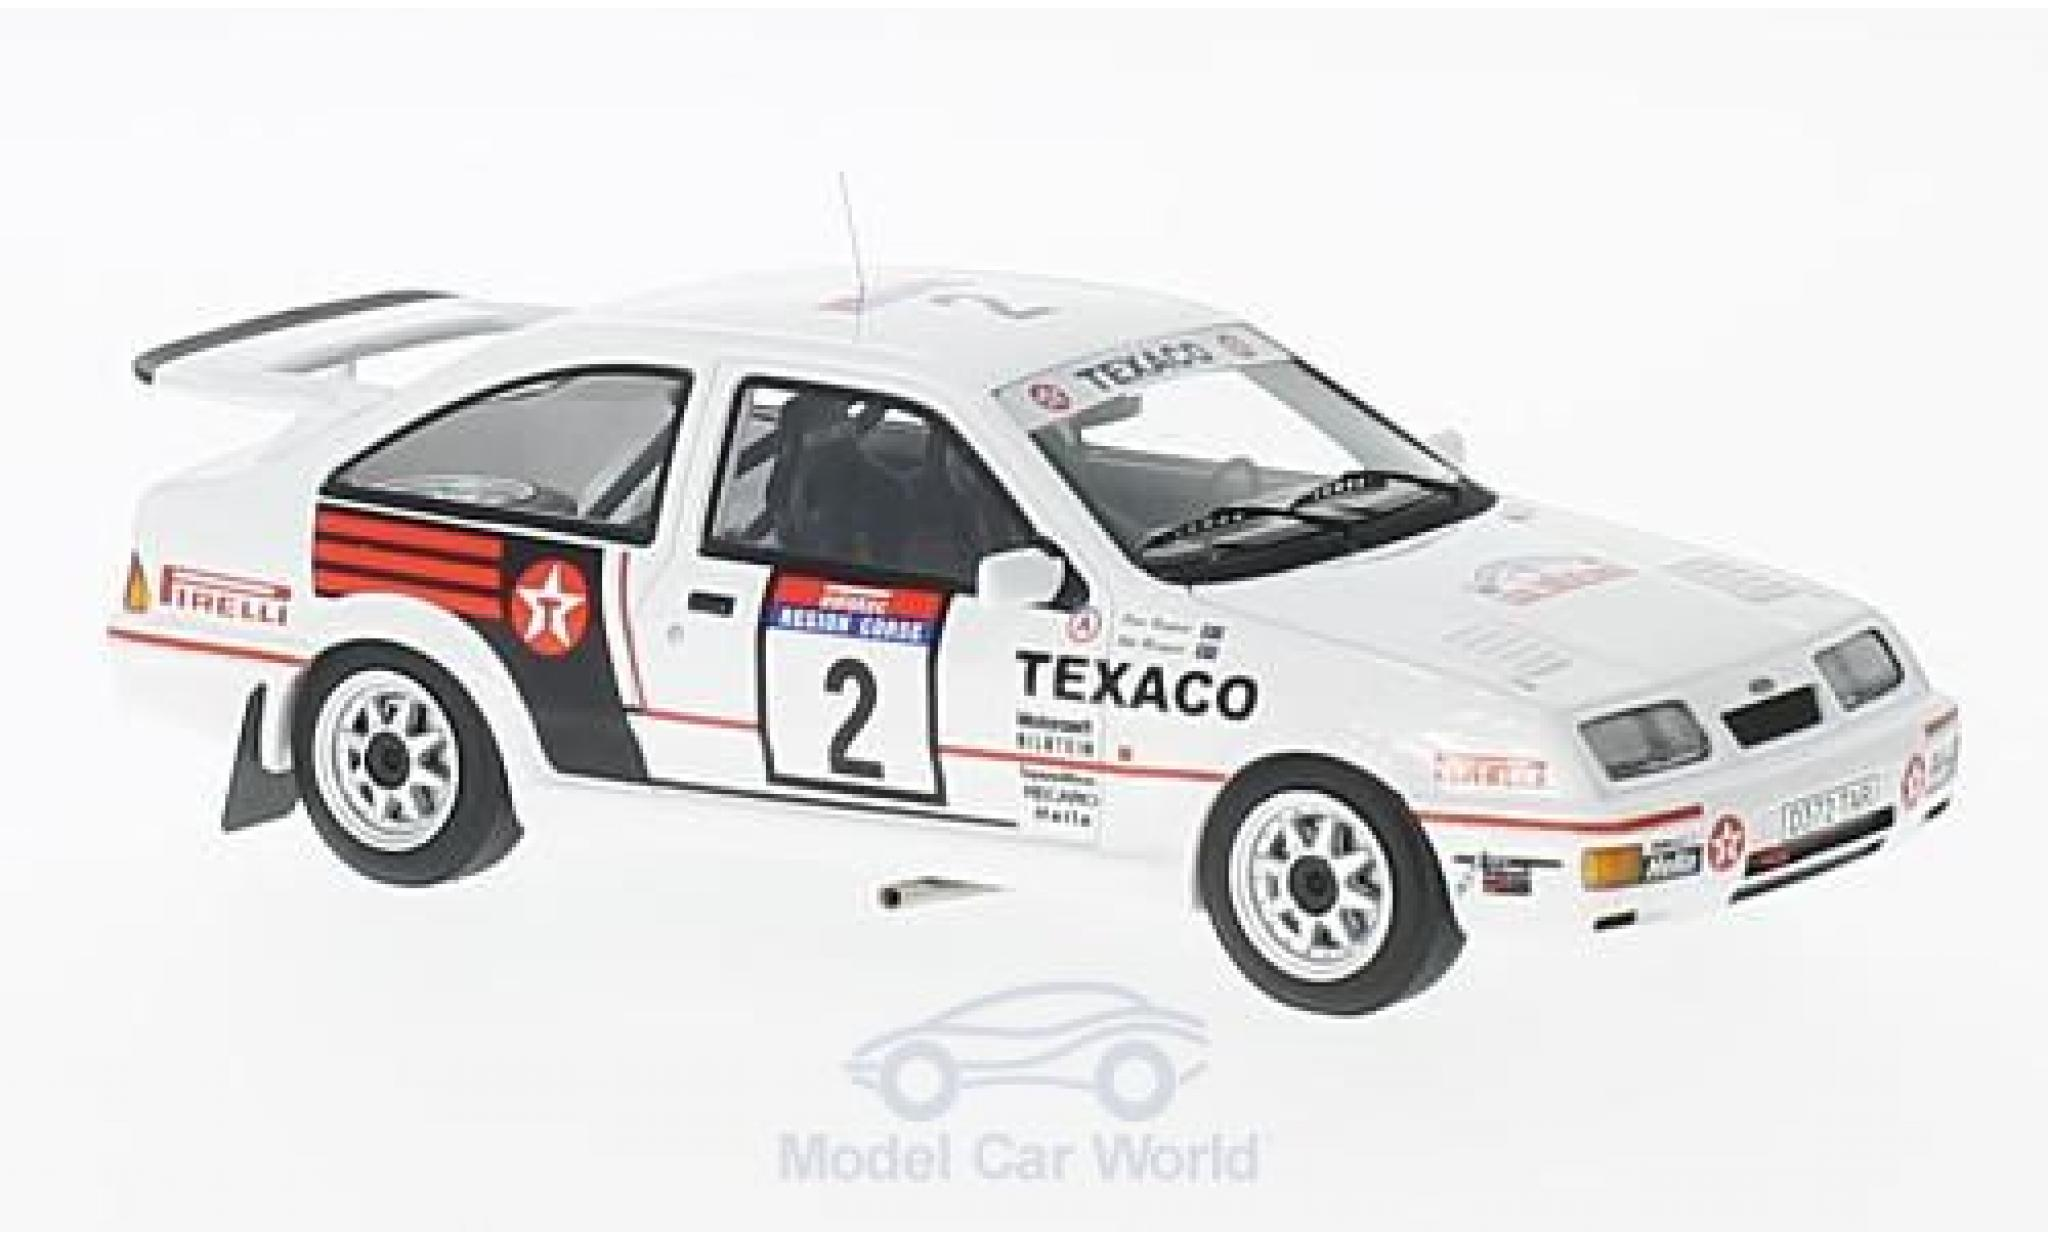 Ford Sierra Cosworth 1/43 Minichamps  Cosworth No.2 Texaco Tour de Corse 1987 S.Blomqvist/K.Grundel